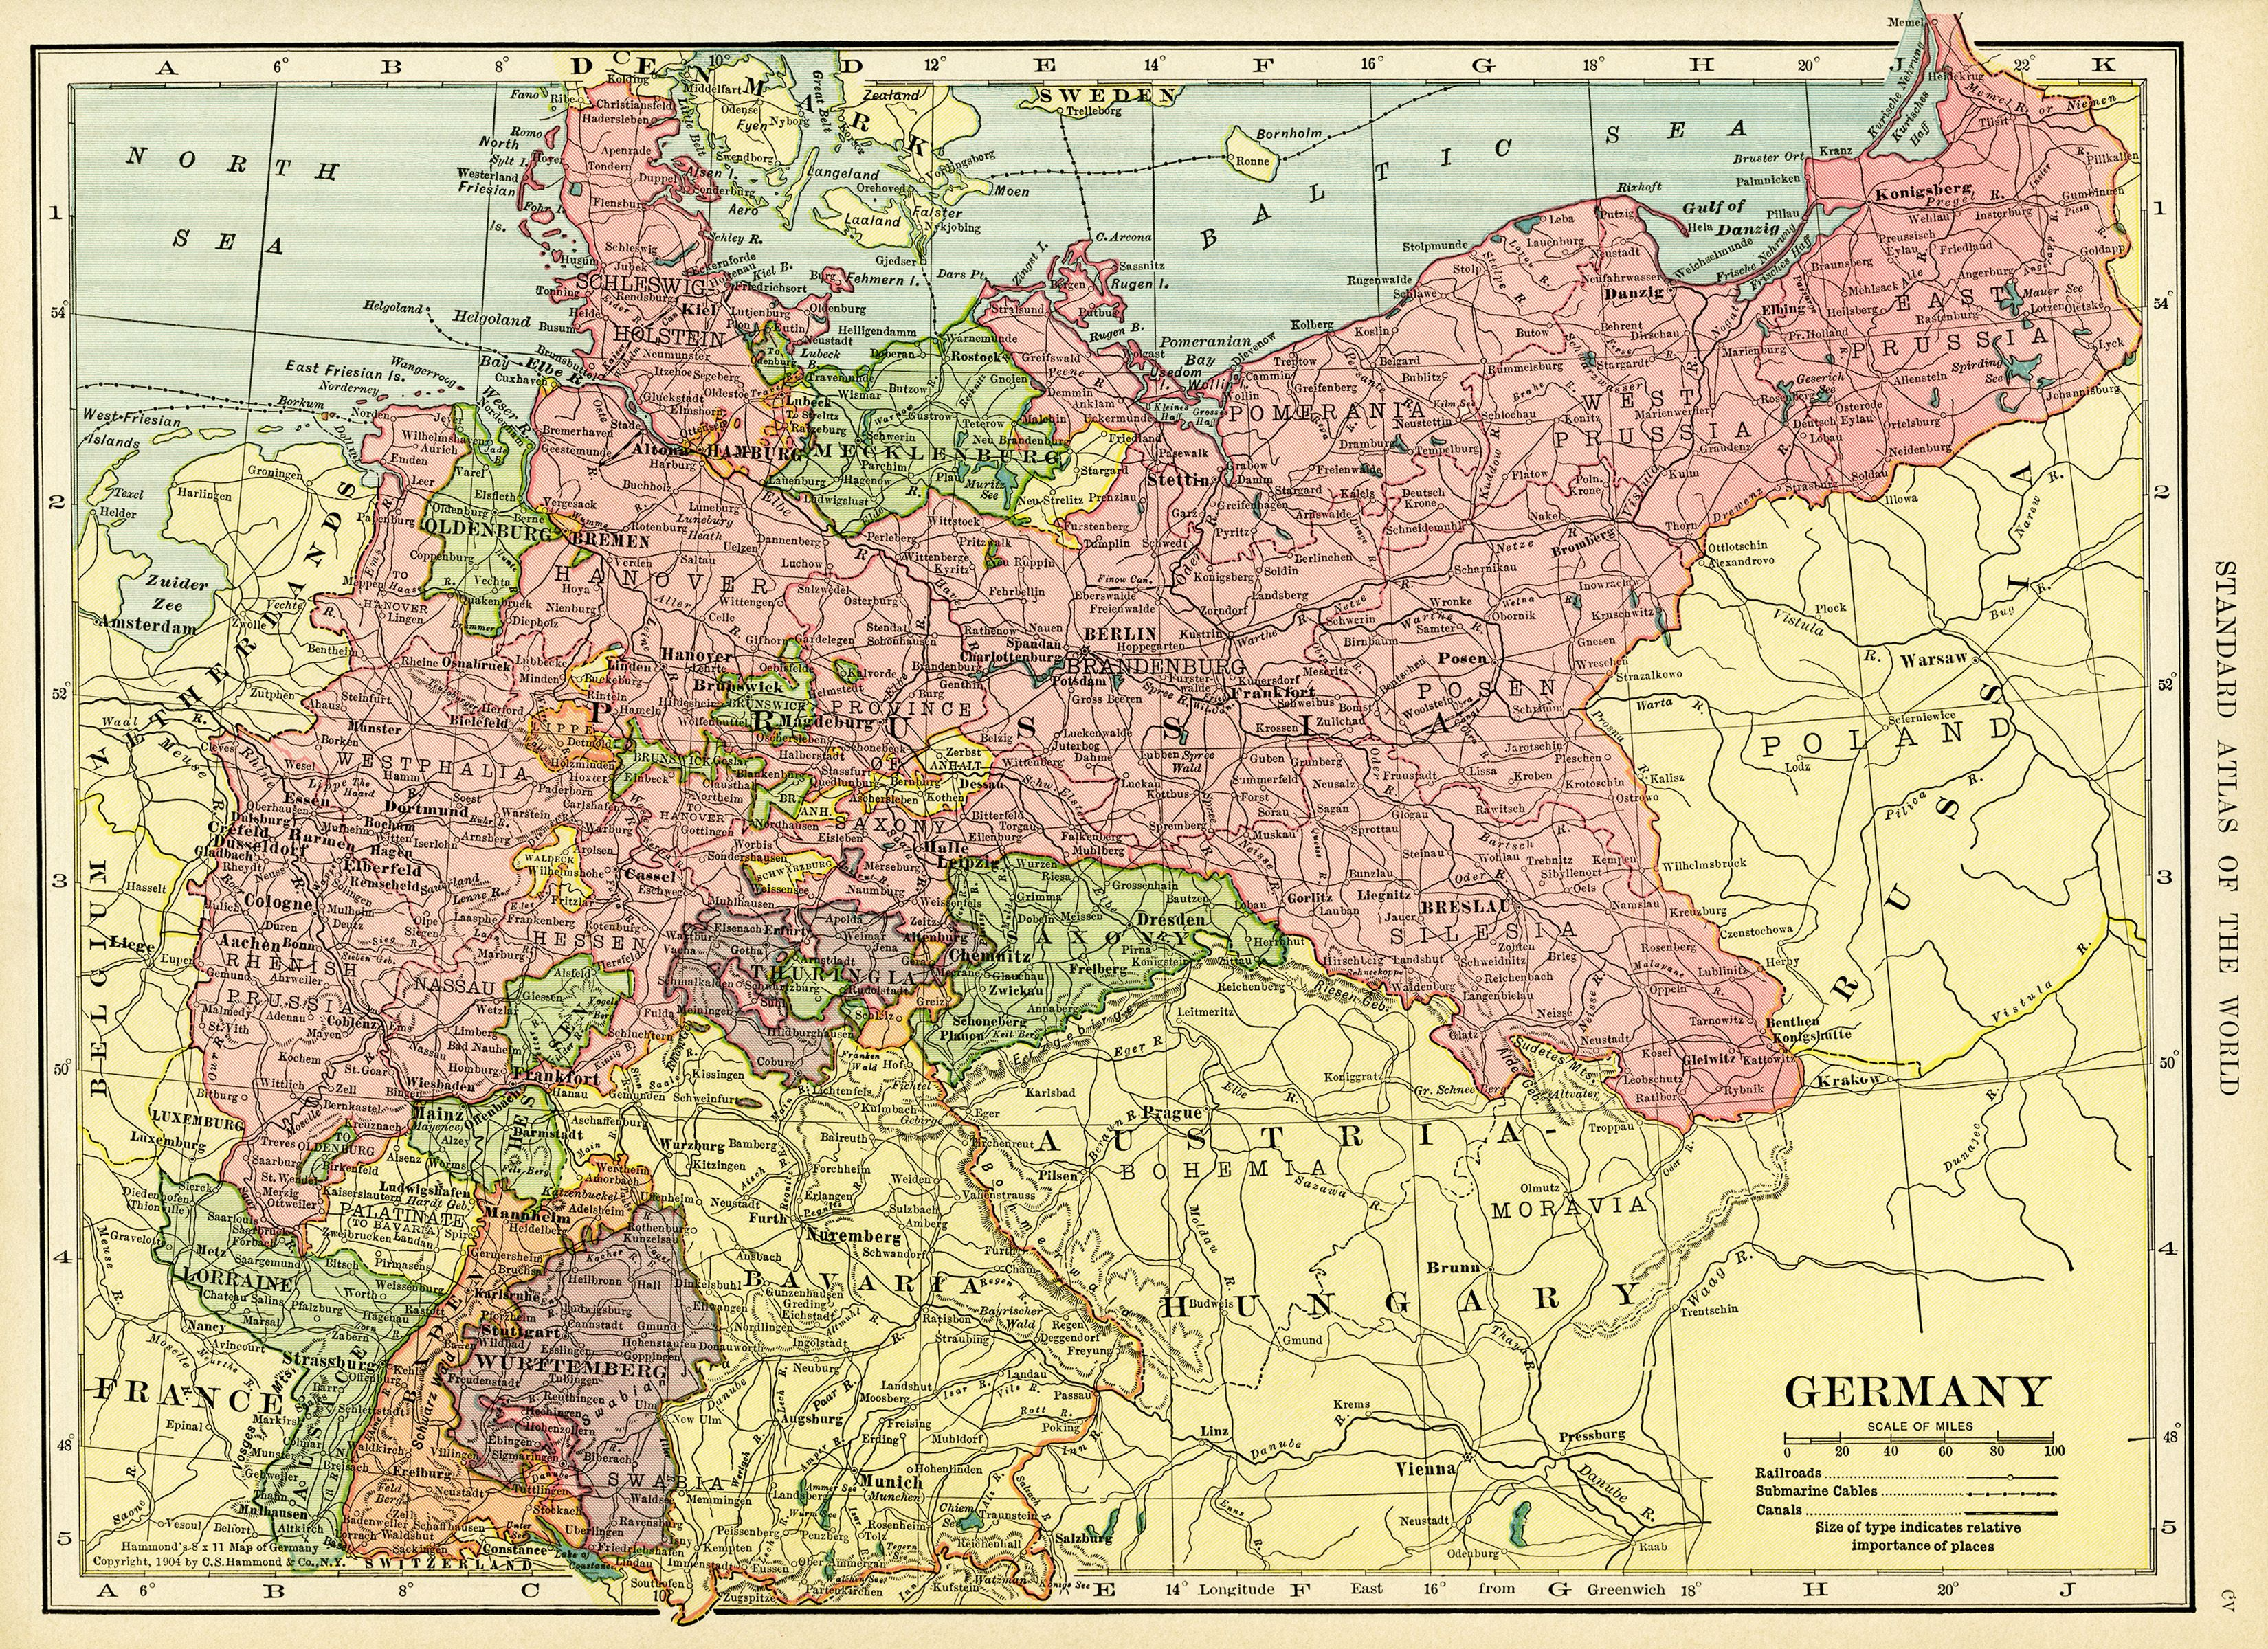 antique map c hammond map history geography germany old map free graphics vintage map germany